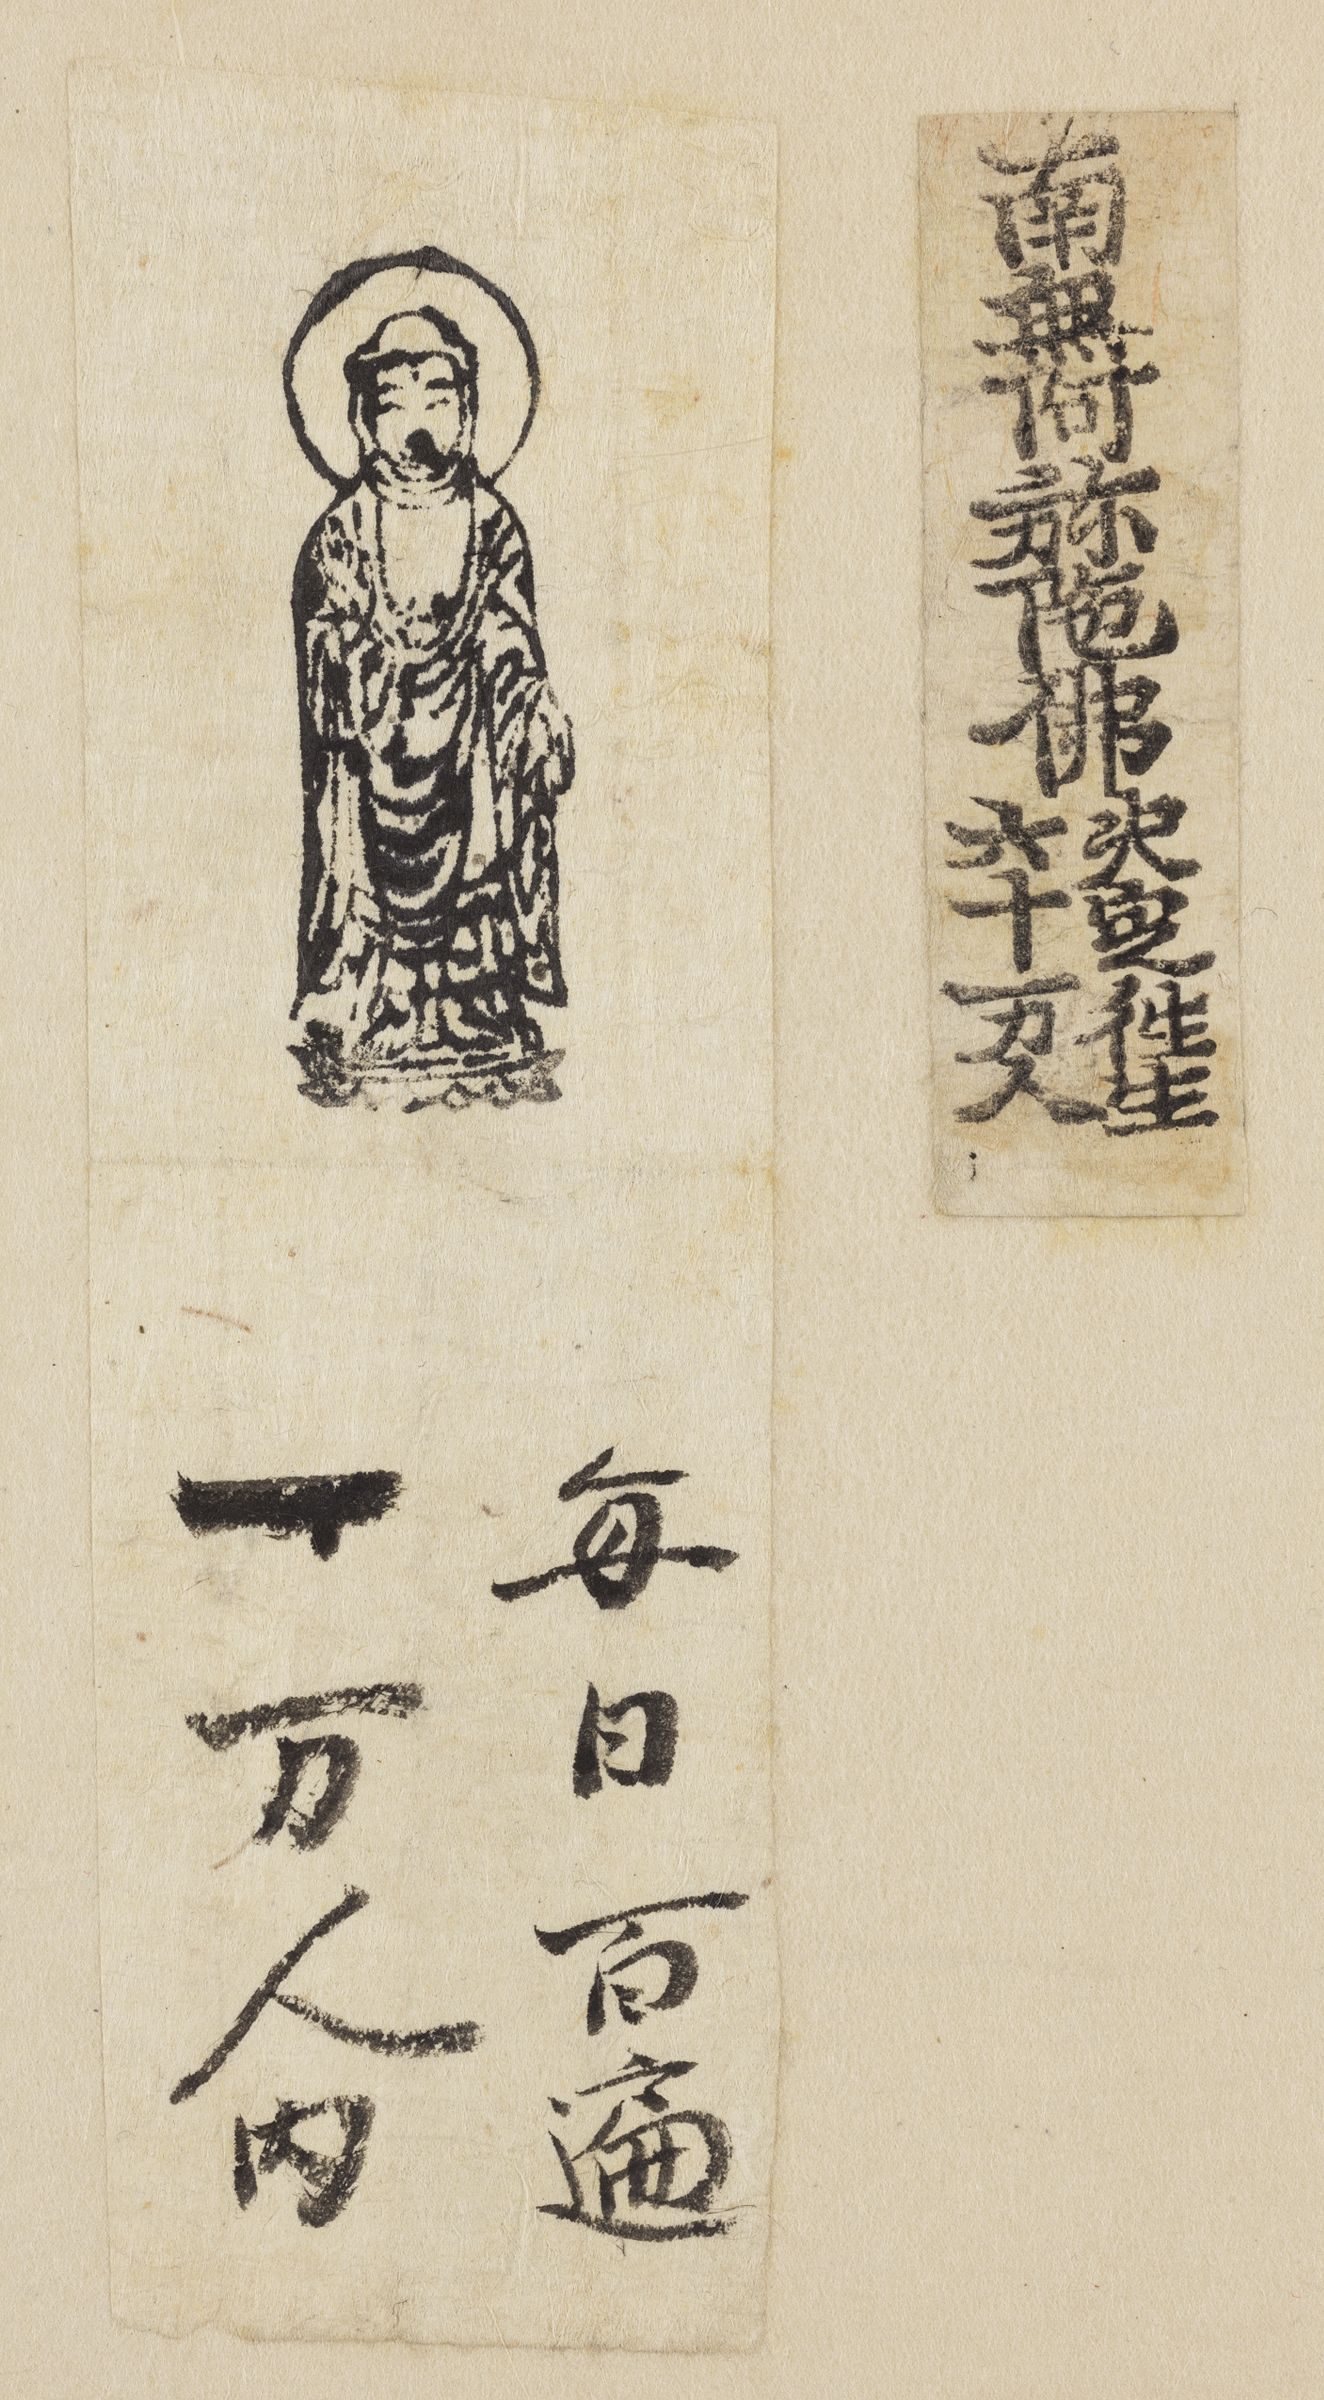 One Of Seven Sheets Of Paper Inscribed With Religious Texts, Poems, Charms [Mounted On A Board];